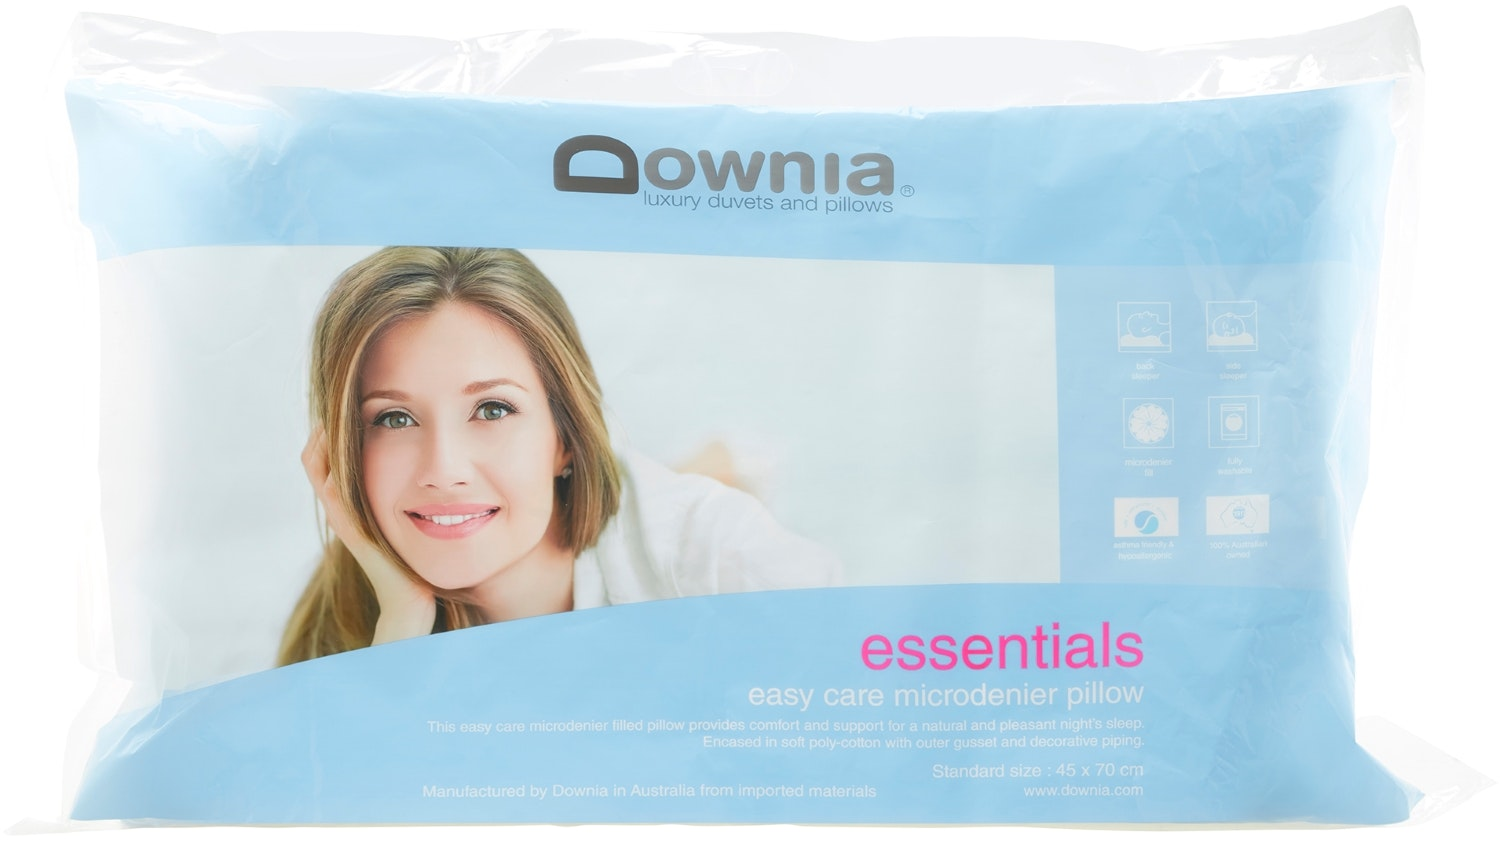 Downessa Essentials Pillow